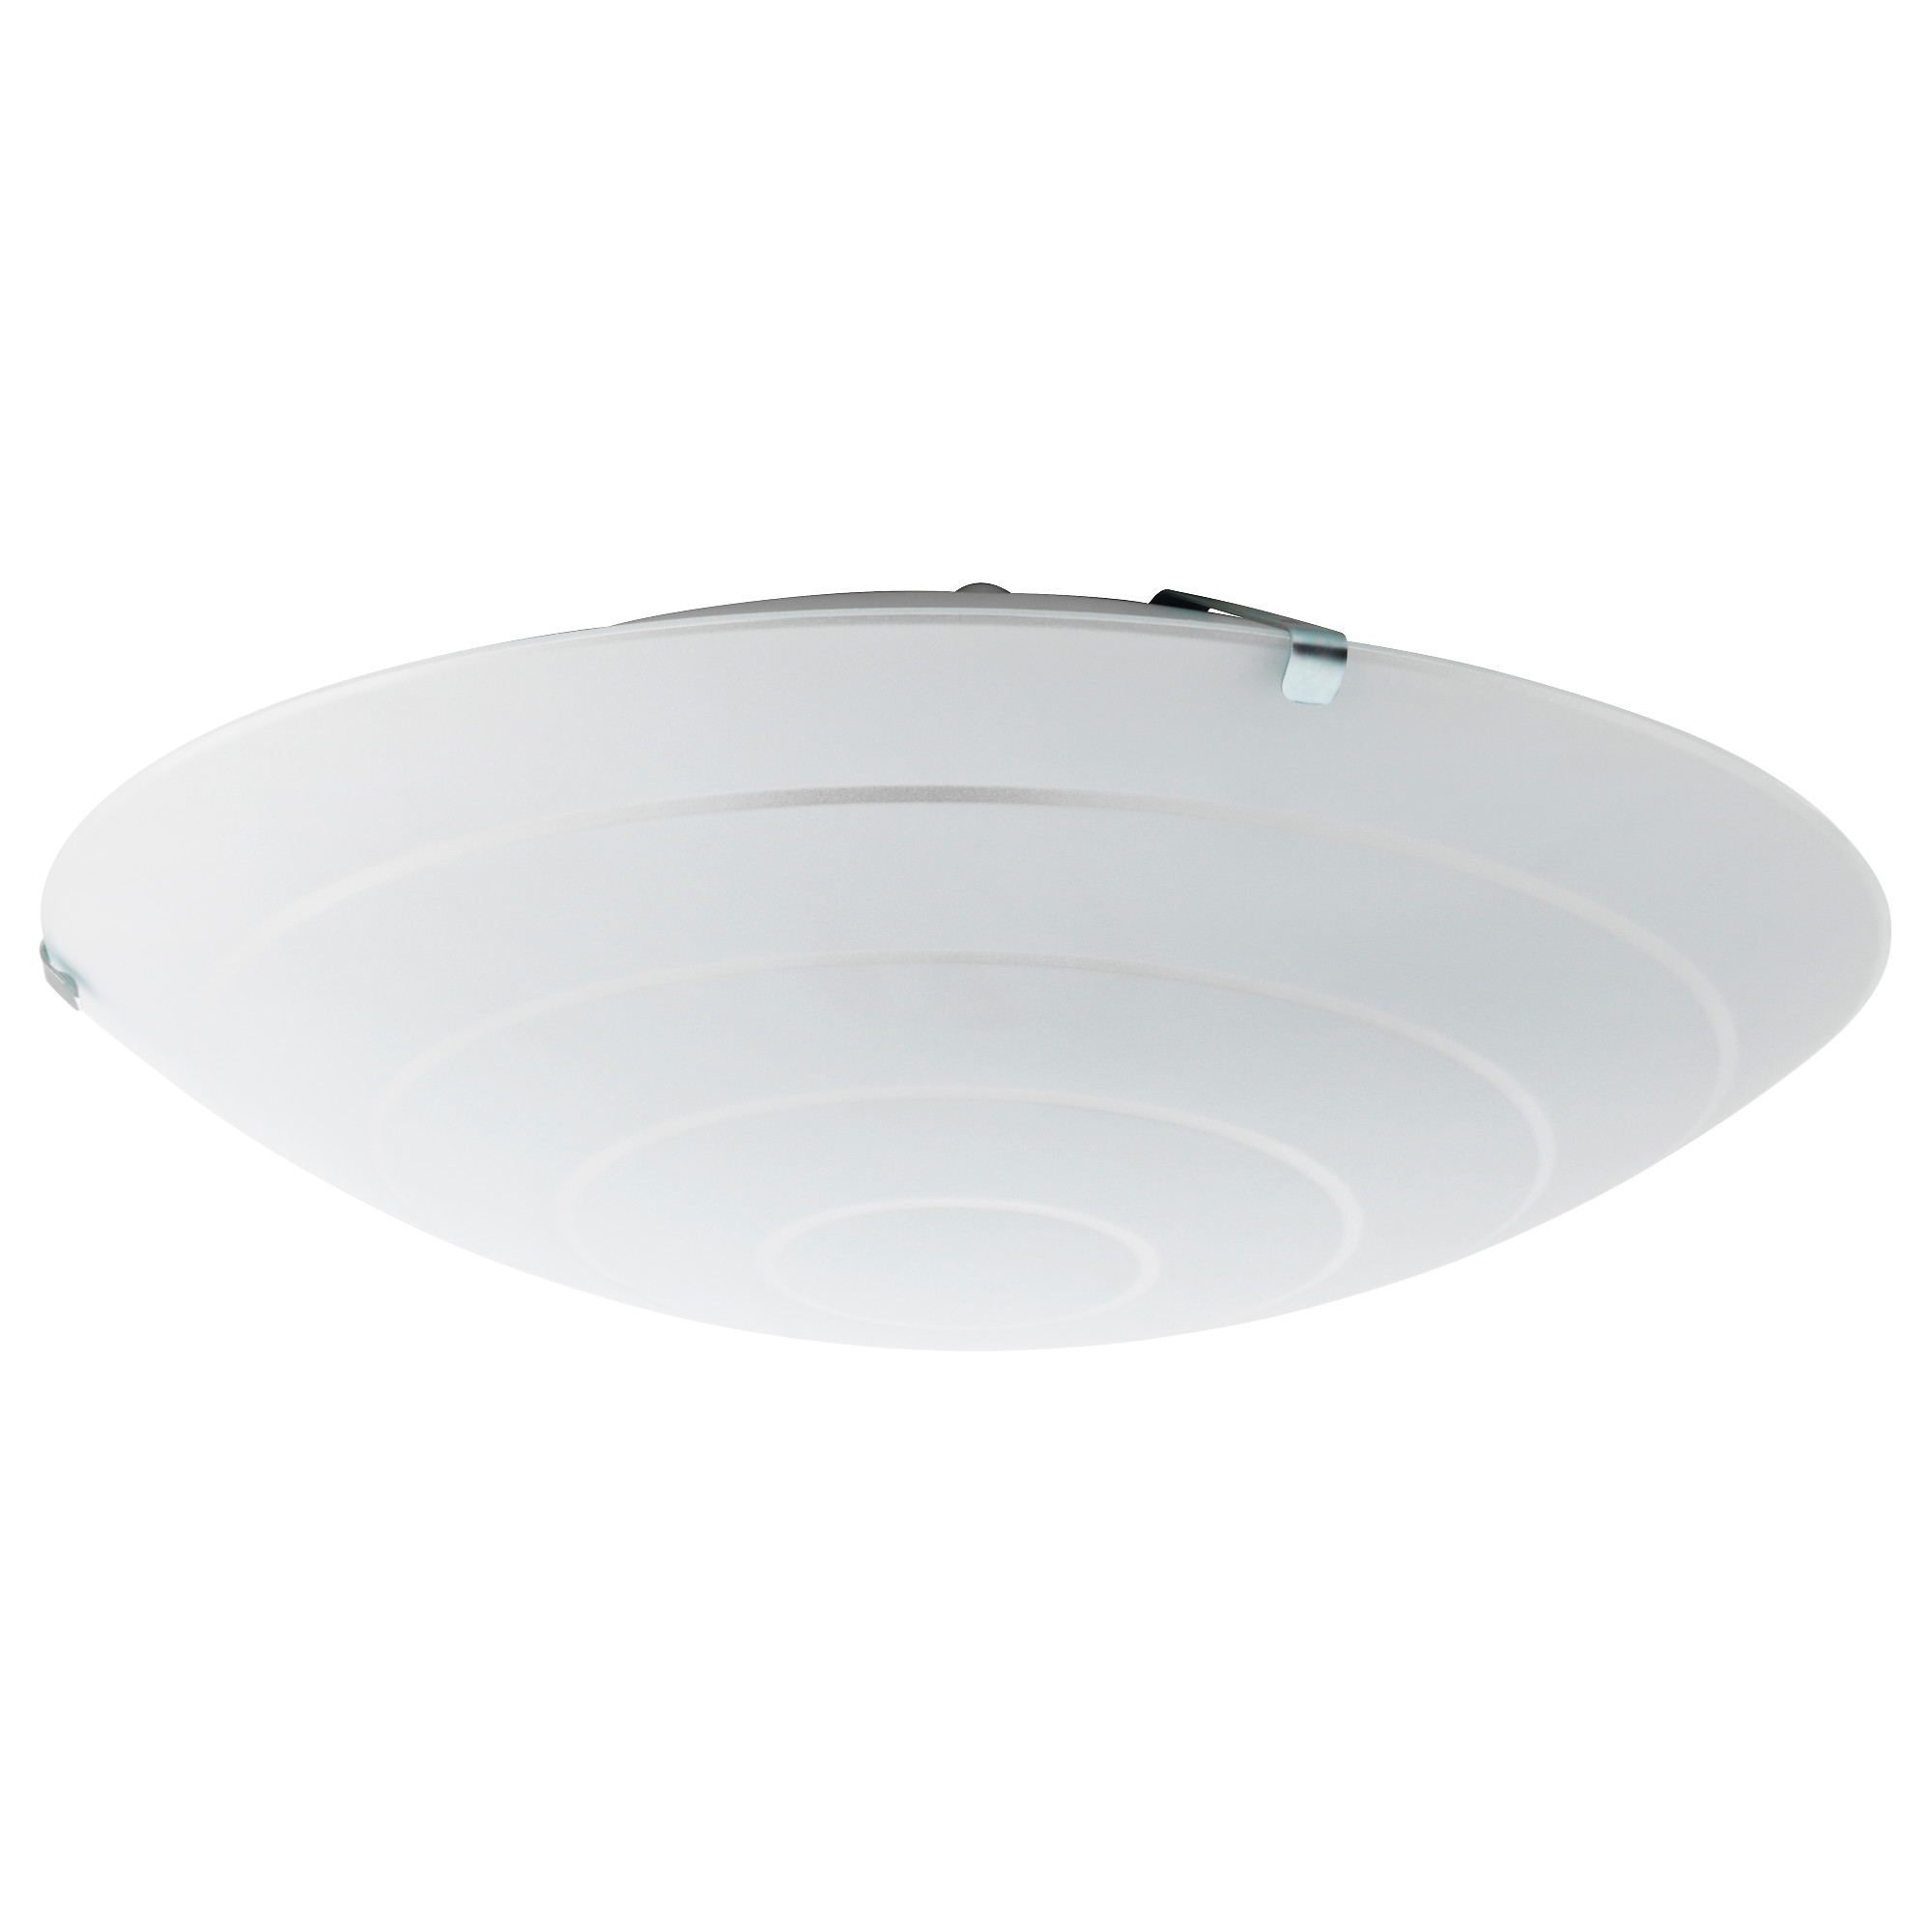 Gt3060 ceiling light